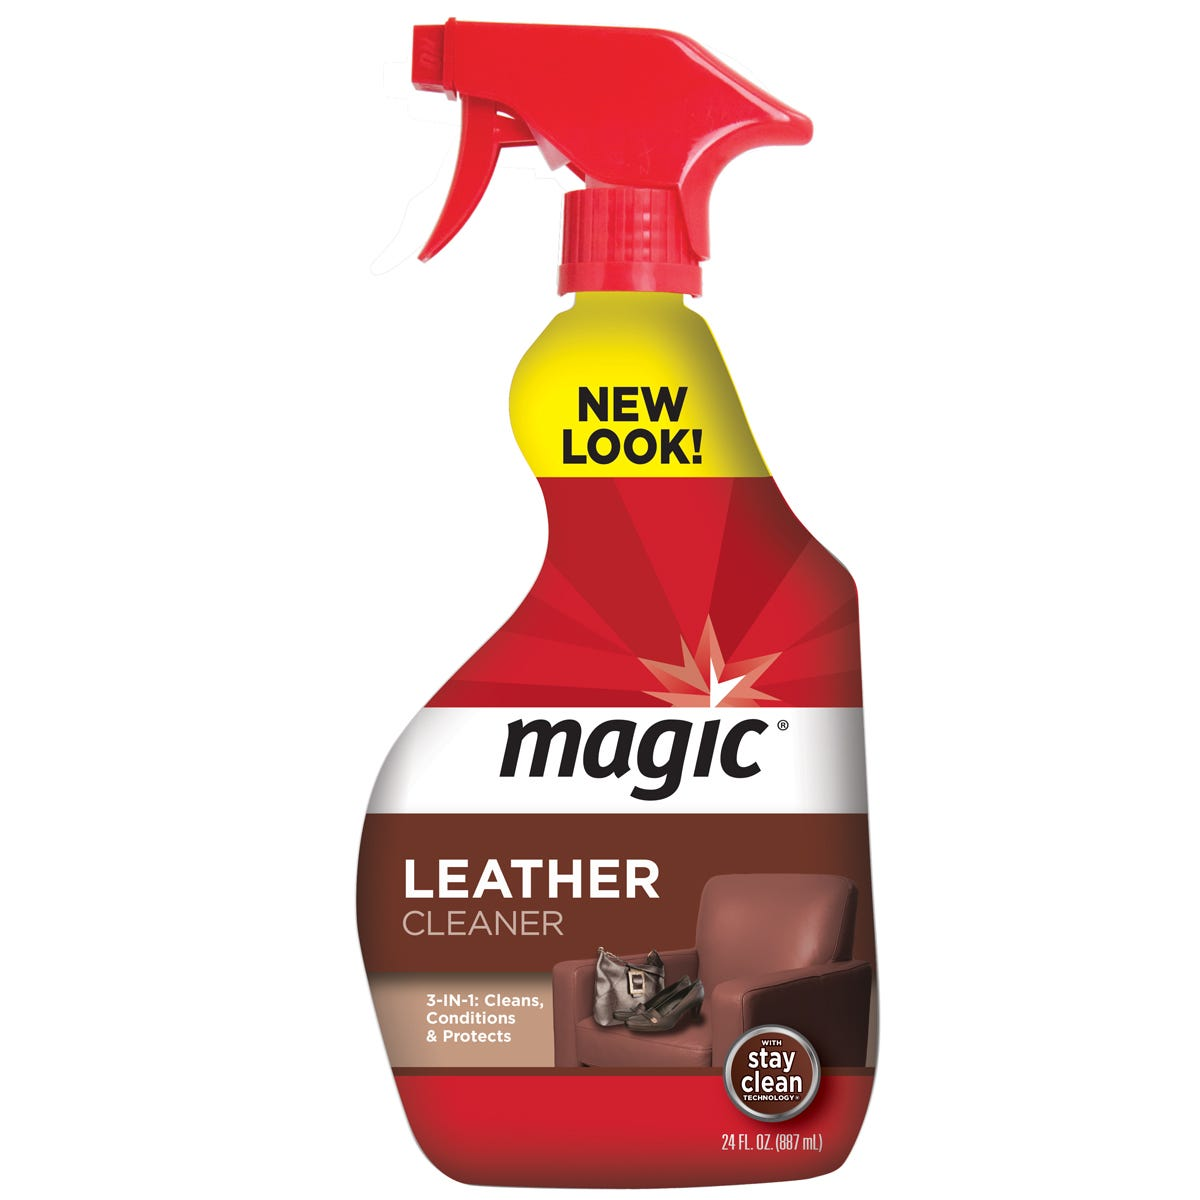 https://googone.com/media/catalog/product/m/a/magic-leather-cleaner-spray_front.jpg